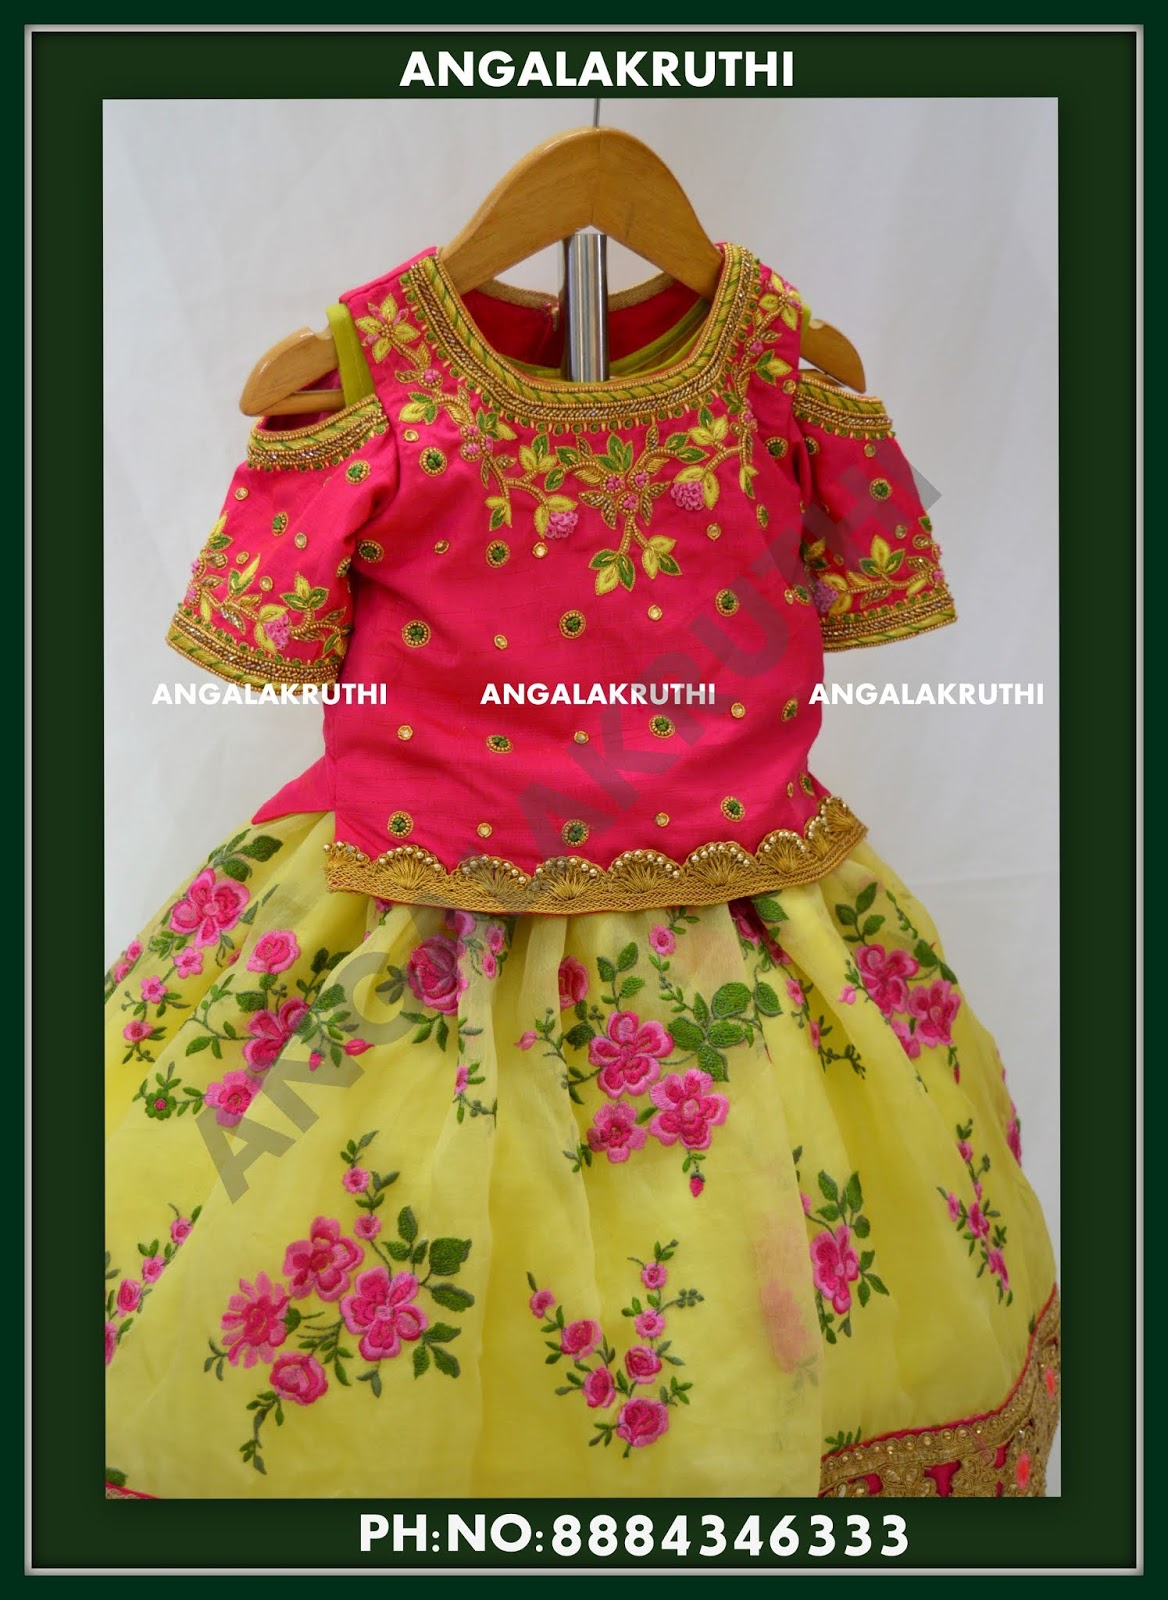 d1d8bf7dfc6 Kids custom designer dresses for 1st birthday -Designs by Angalakruthi